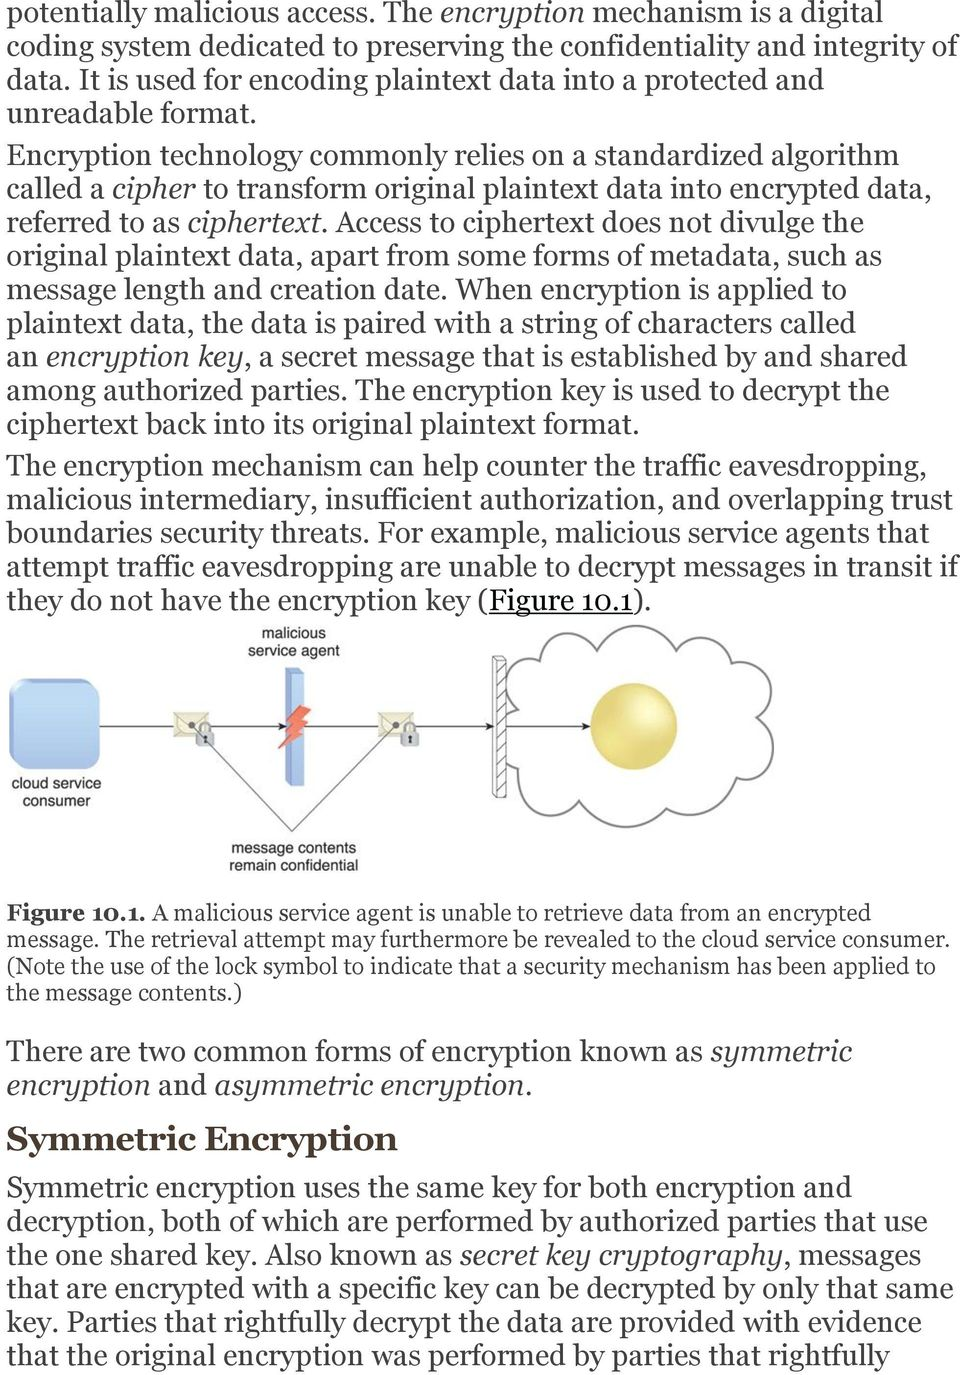 Encryption technology commonly relies on a standardized algorithm called a cipher to transform original plaintext data into encrypted data, referred to as ciphertext.